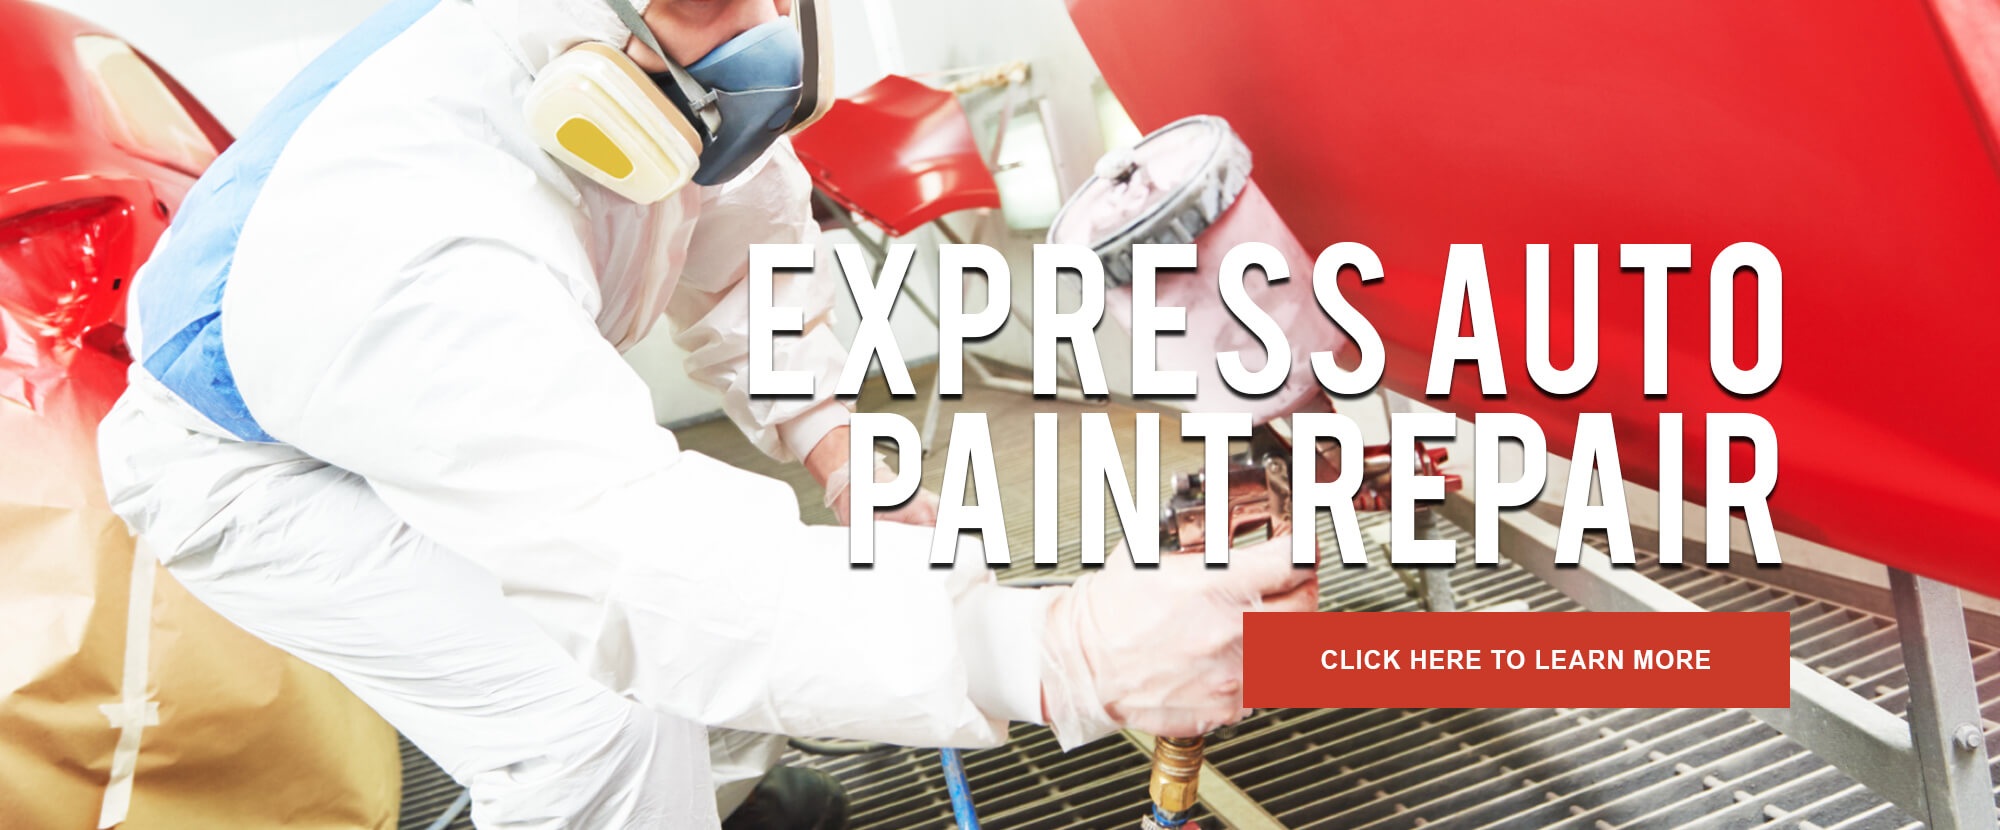 Express Auto Paint Repair